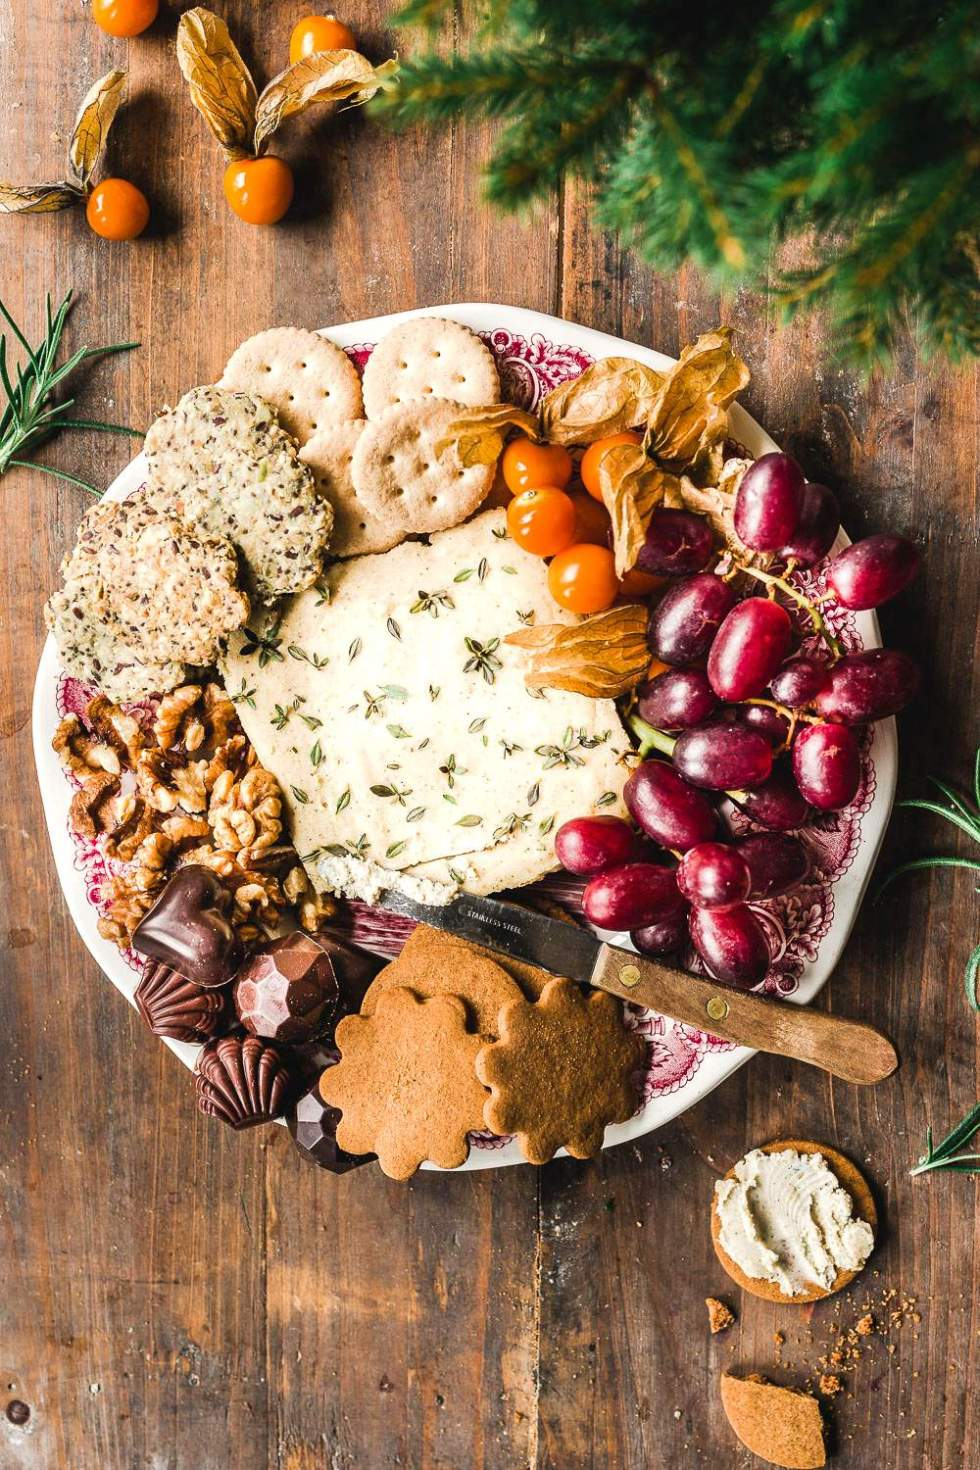 Vegan holiday wreath platter